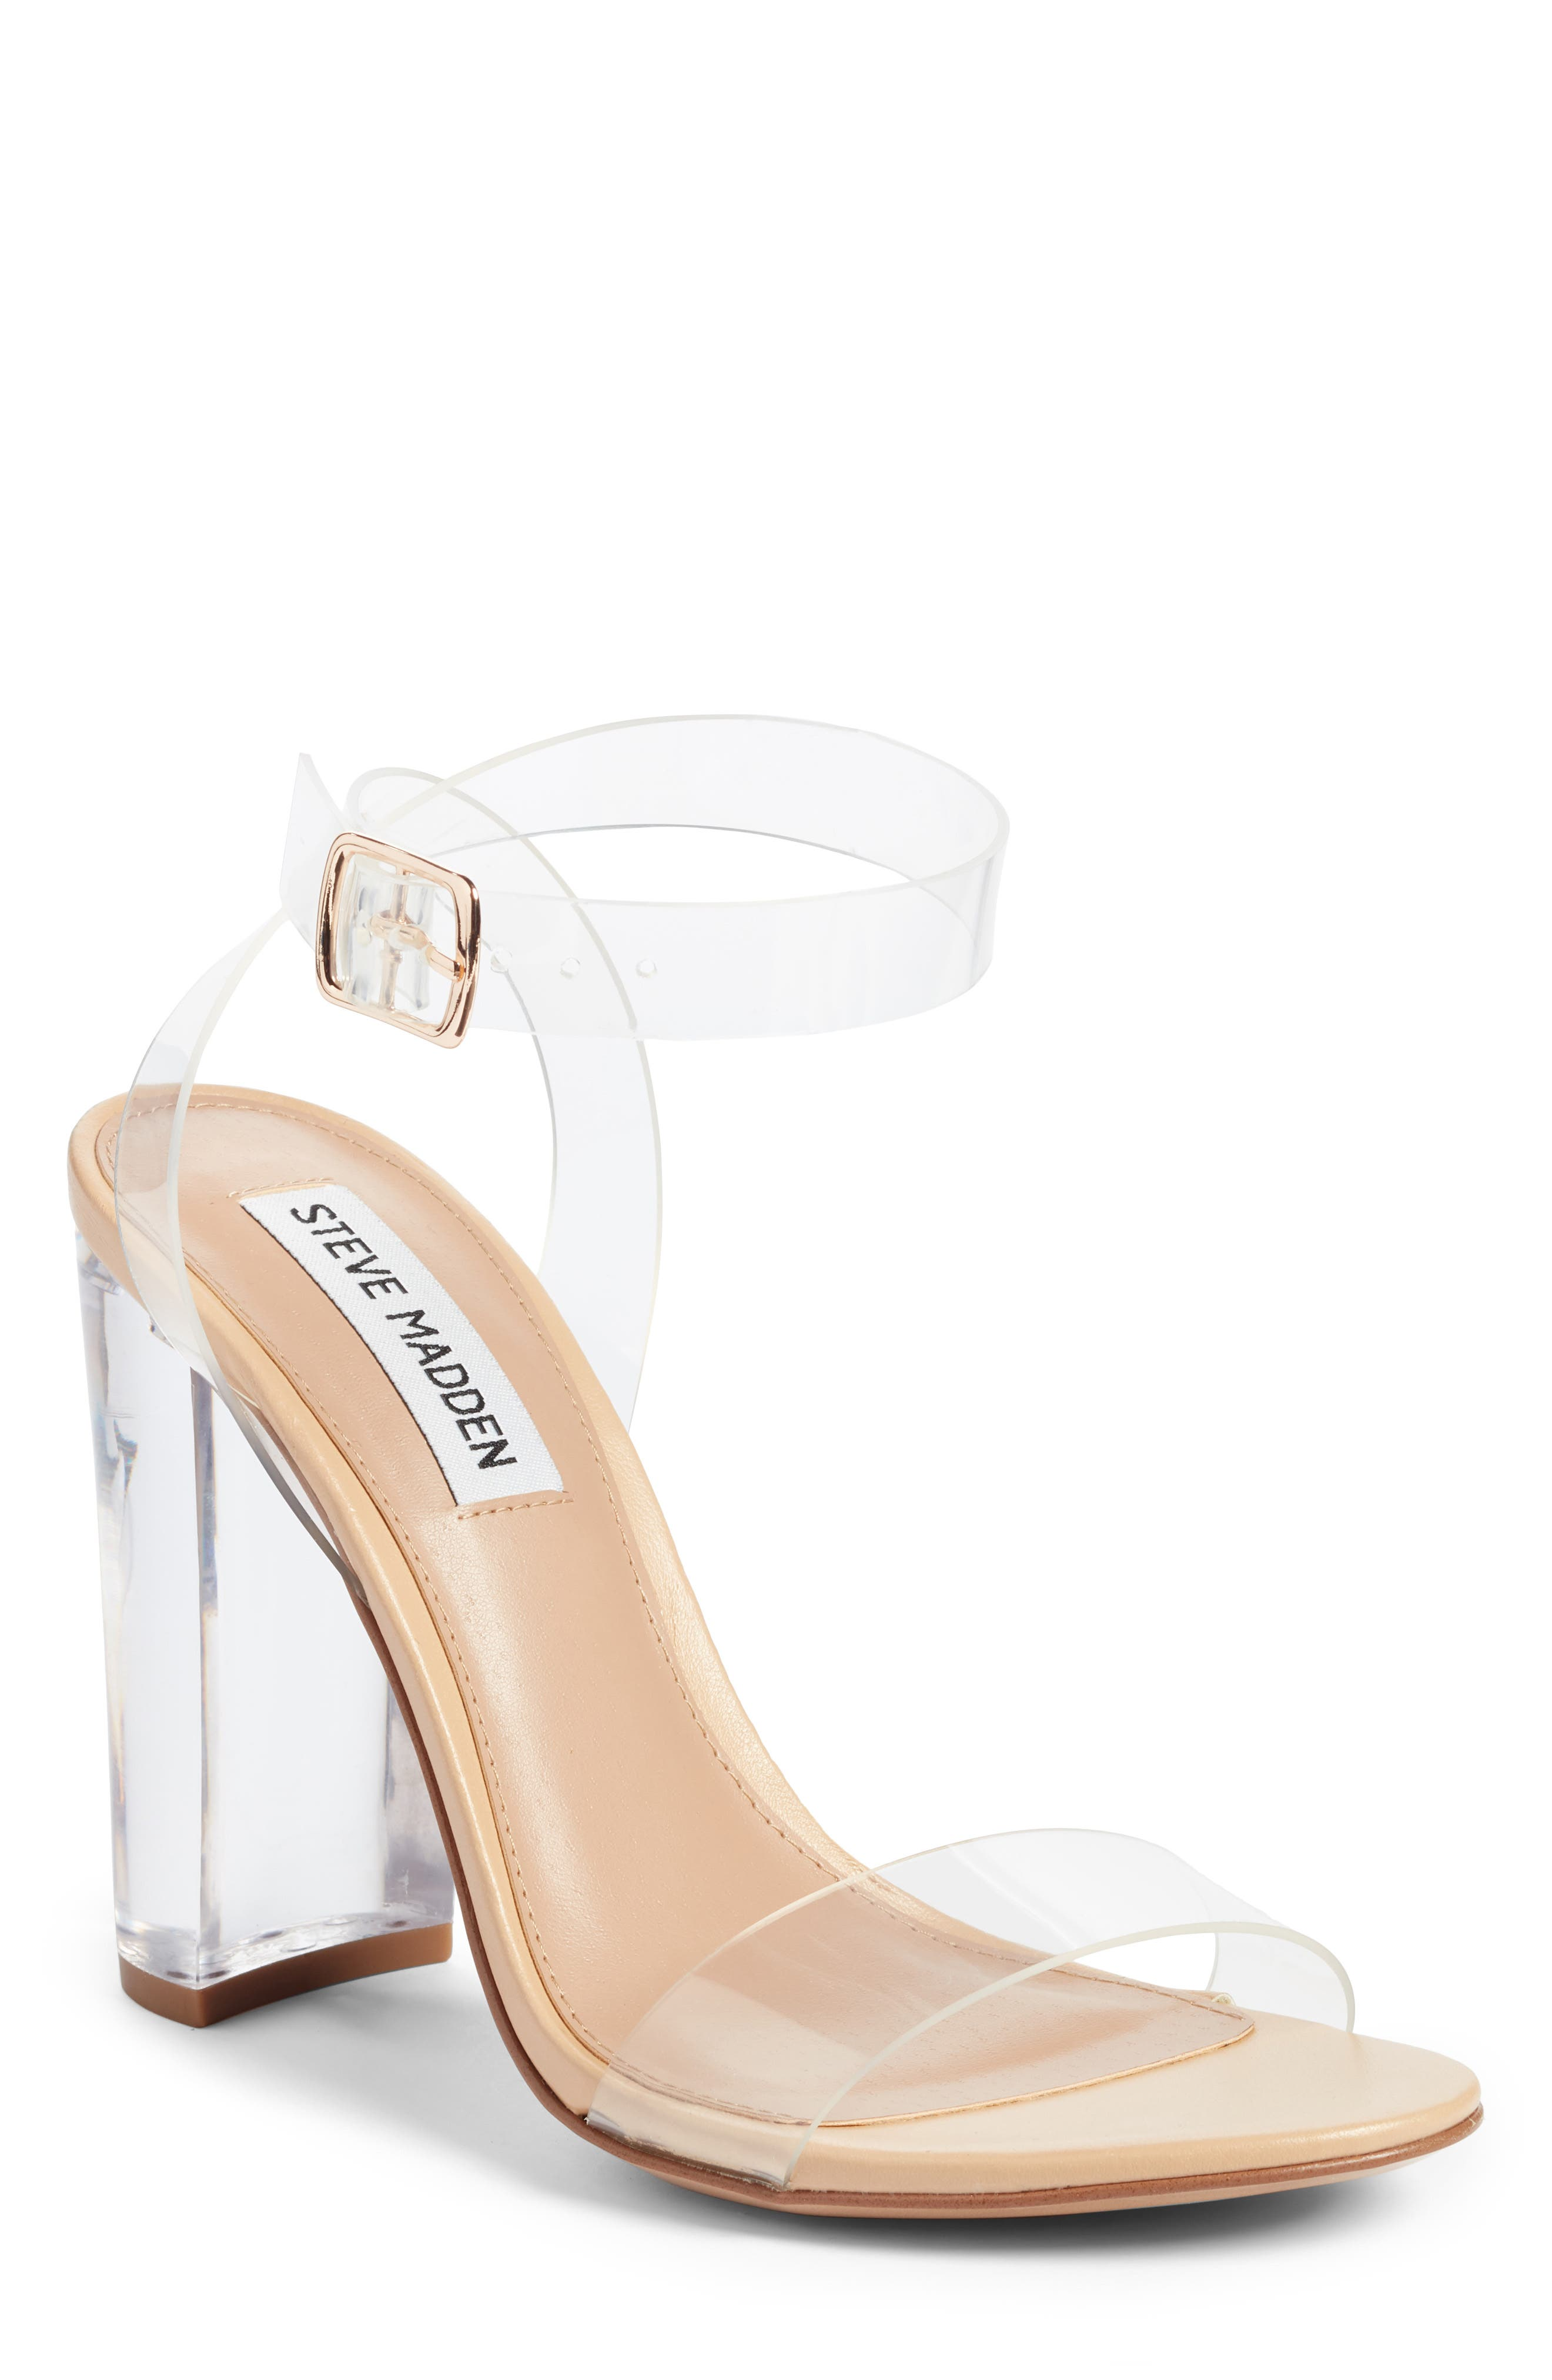 Camille Clear Sandal,                         Main,                         color, CLEAR